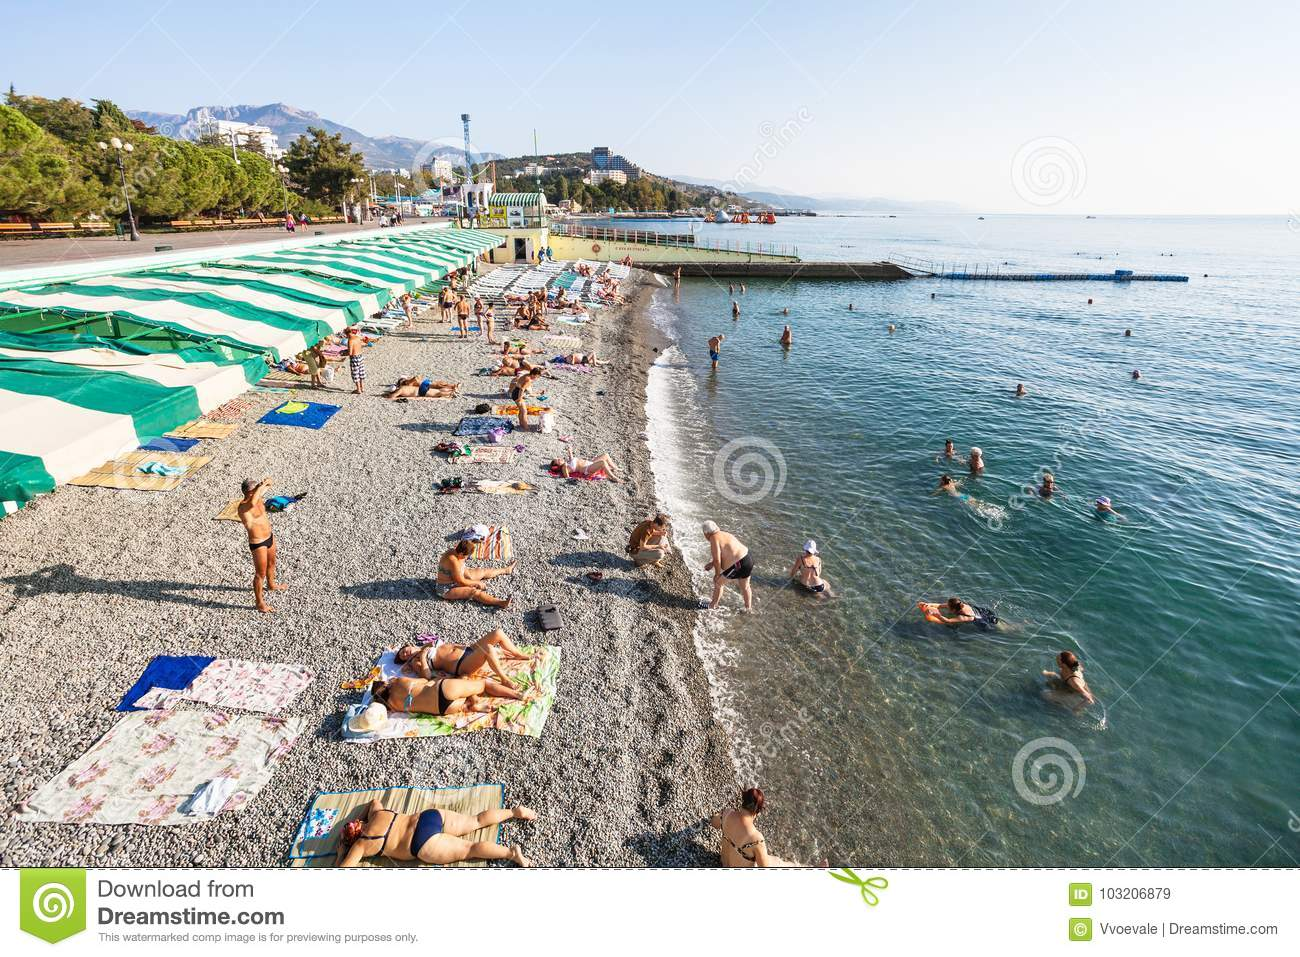 Southern coast of Crimea, Alushta. Beaches, vacation by the sea. Guest reviews. Alushta: Hotels with a private beach 14